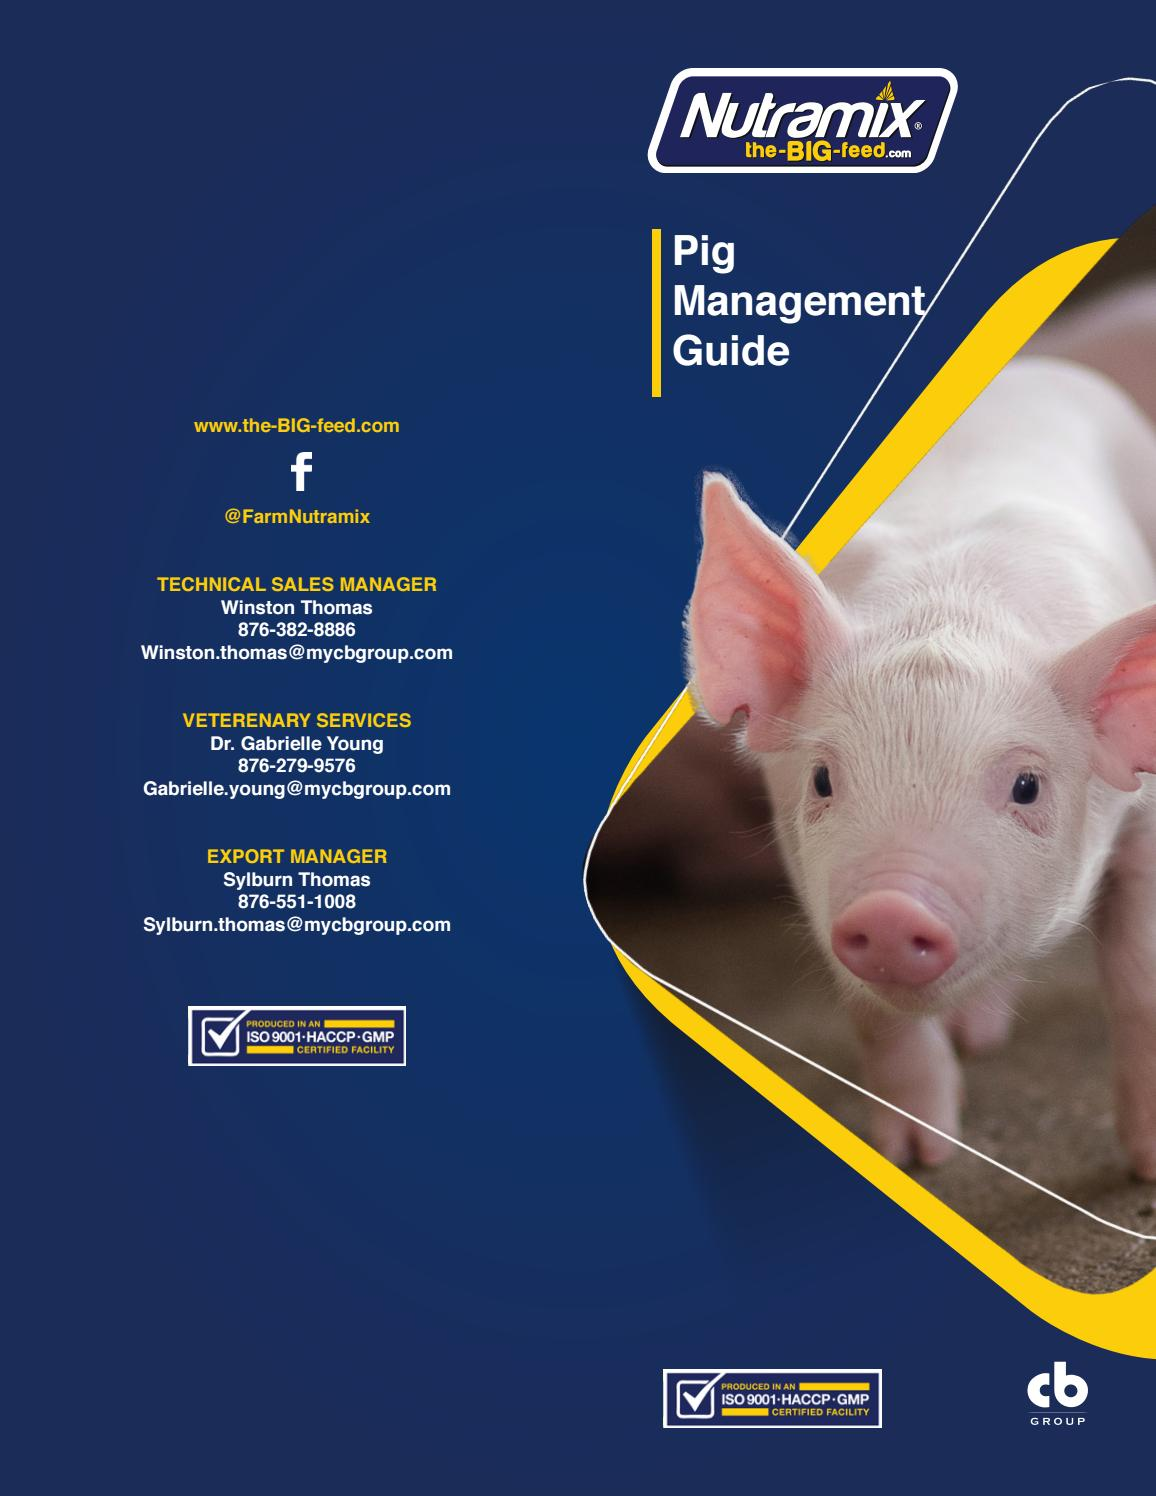 Nutramix - Pig Management Guide - 2016 by Chat Bout - issuu